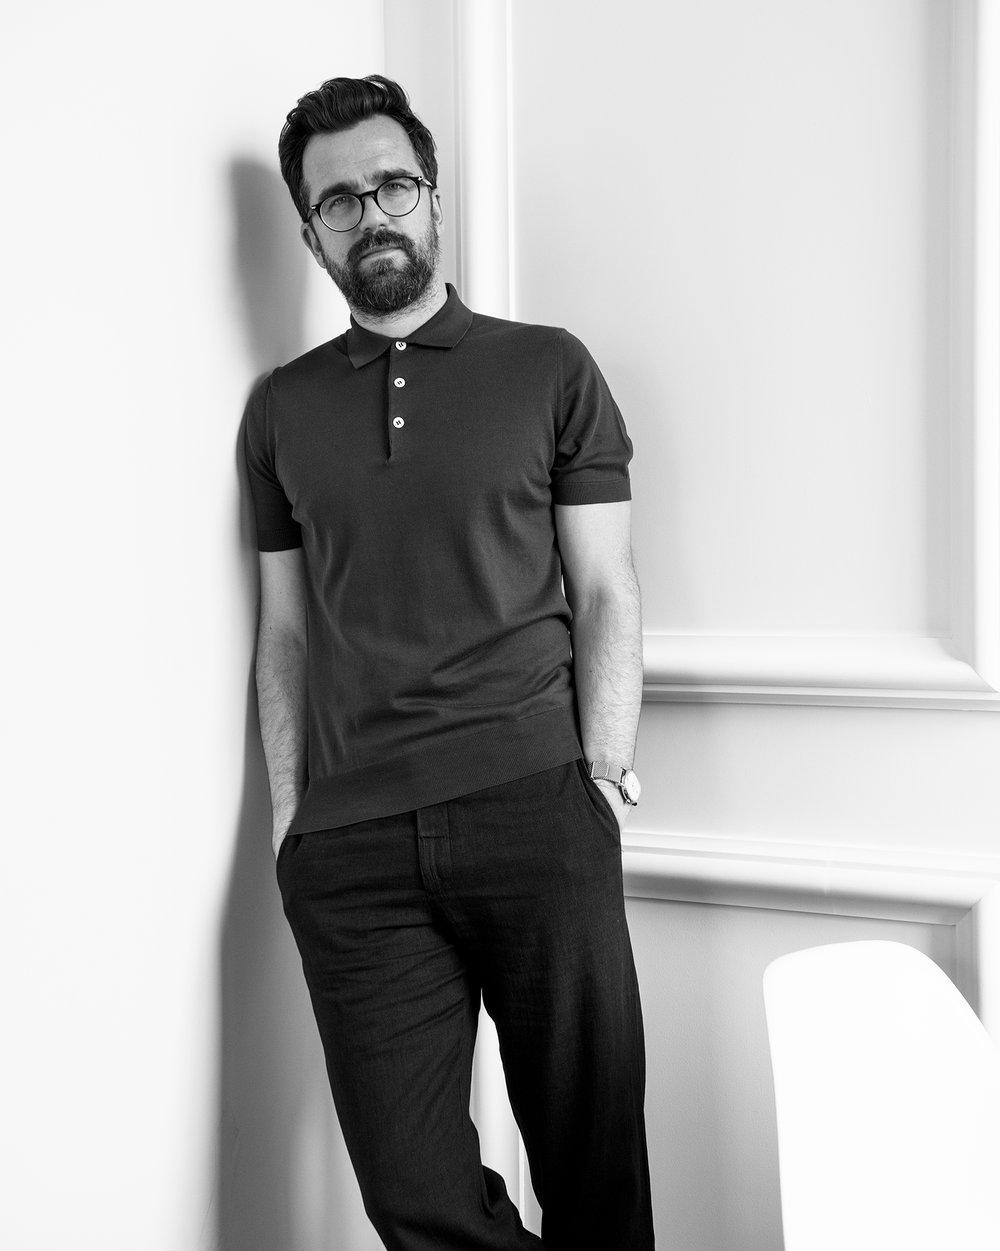 BRUNELLO CUCINELLI polo shirt, $545 available at mrporter.com, OLIVER SPENCER canvas trousers, $255 available at mrporter.com